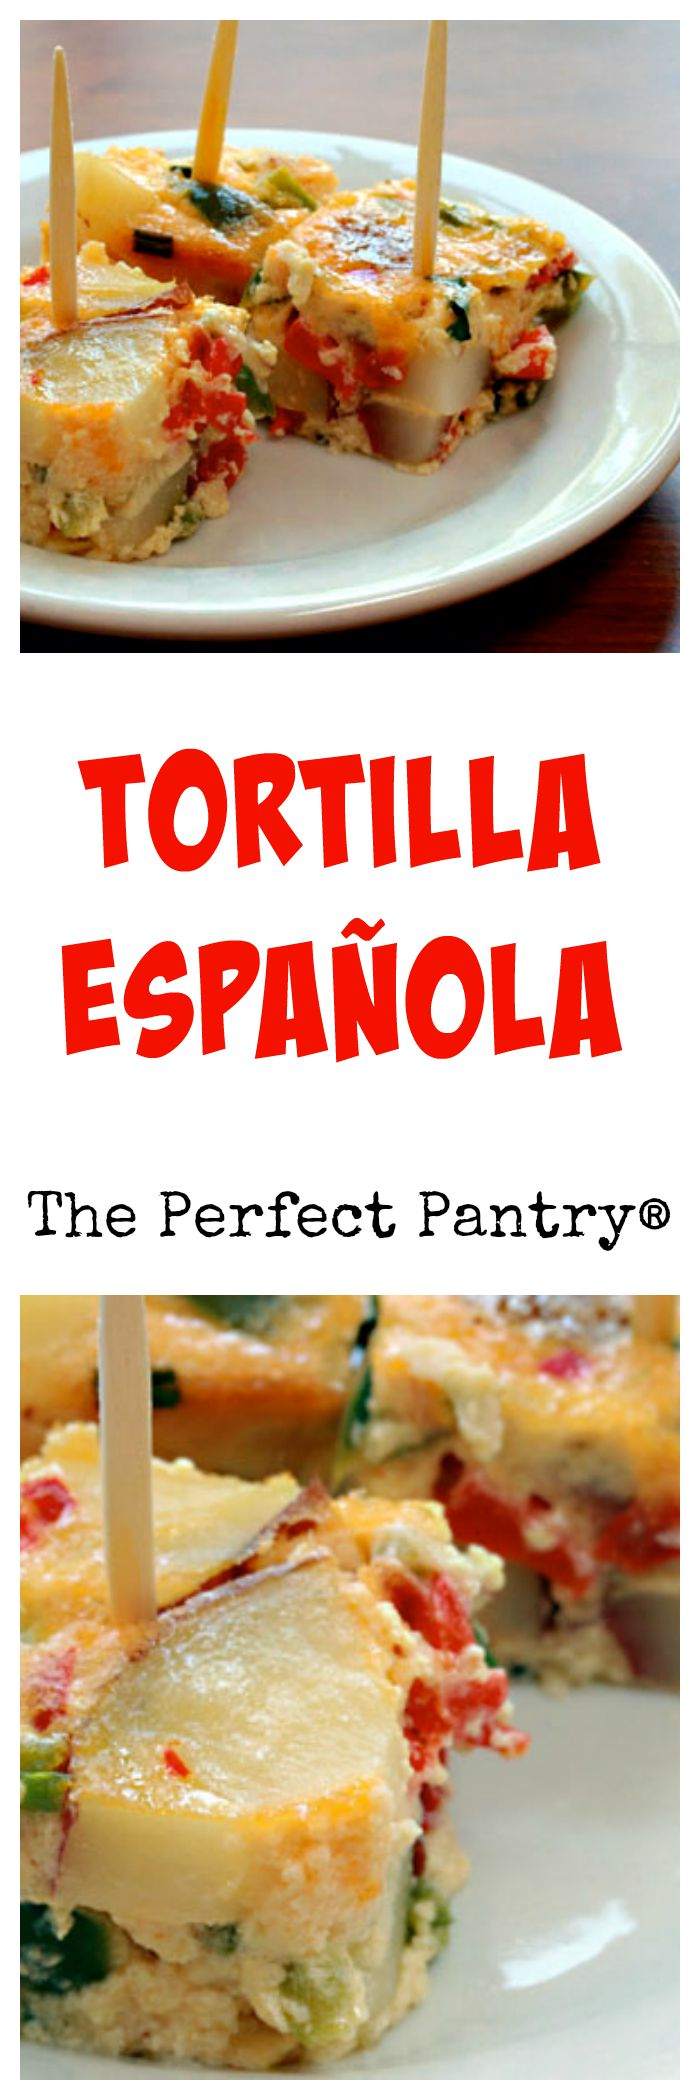 Tortilla española, a favorite tapas dish baked in the oven, from The Perfect Pantry.